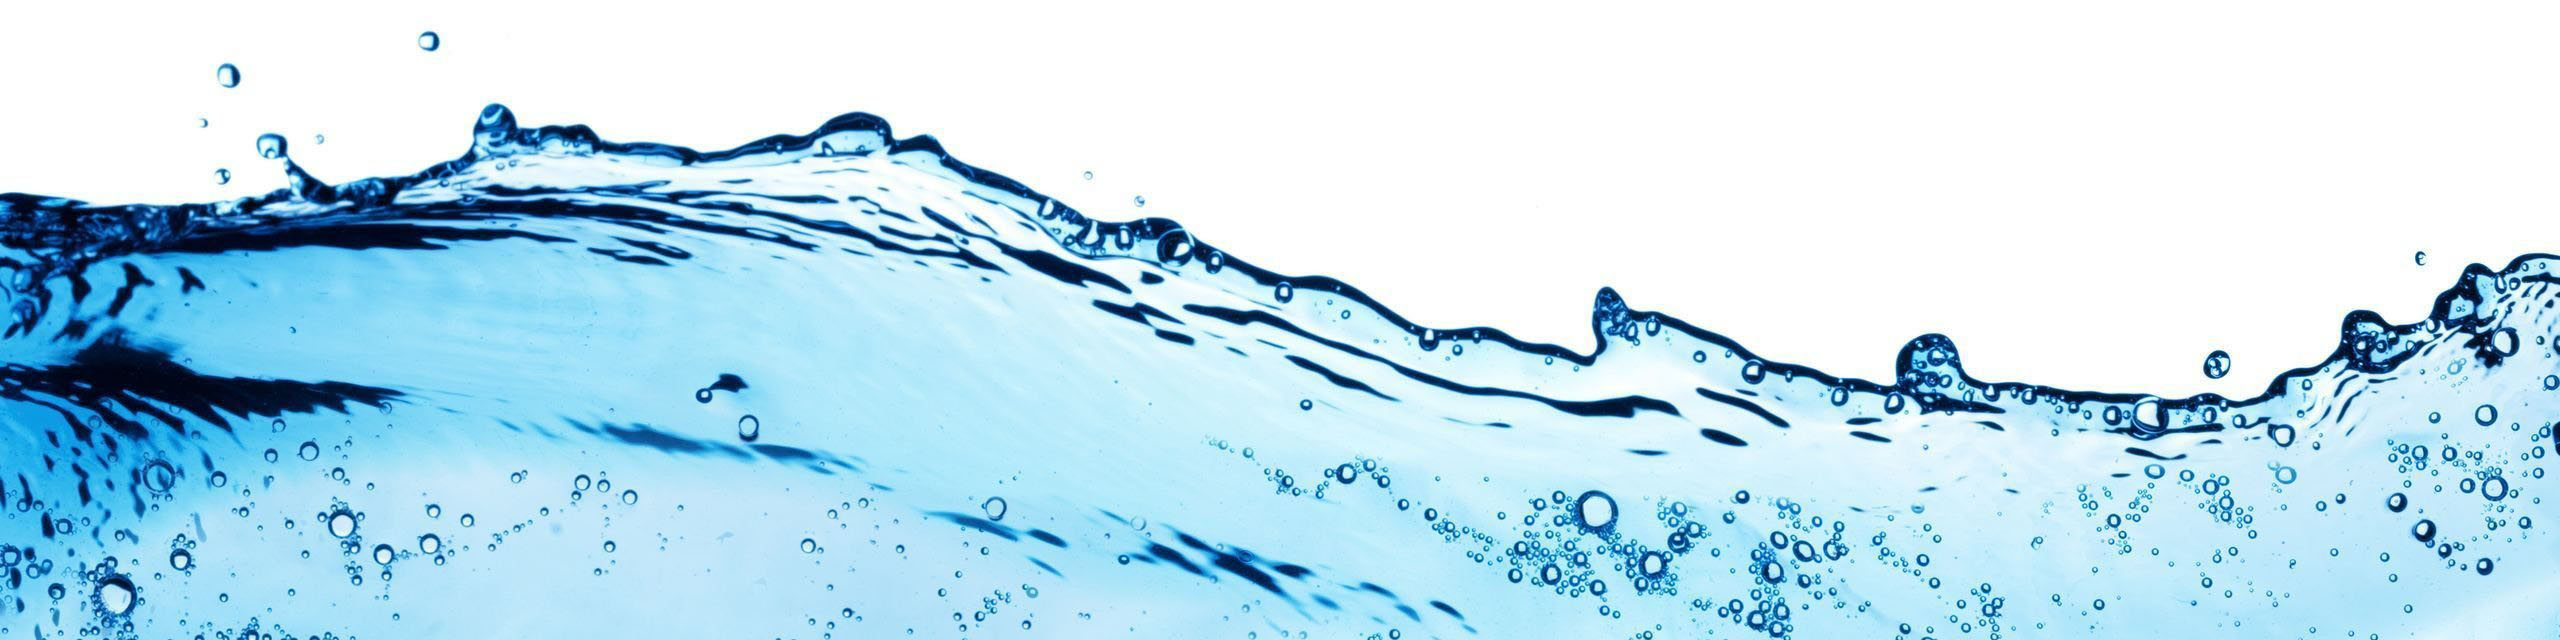 Water-Graphics-6